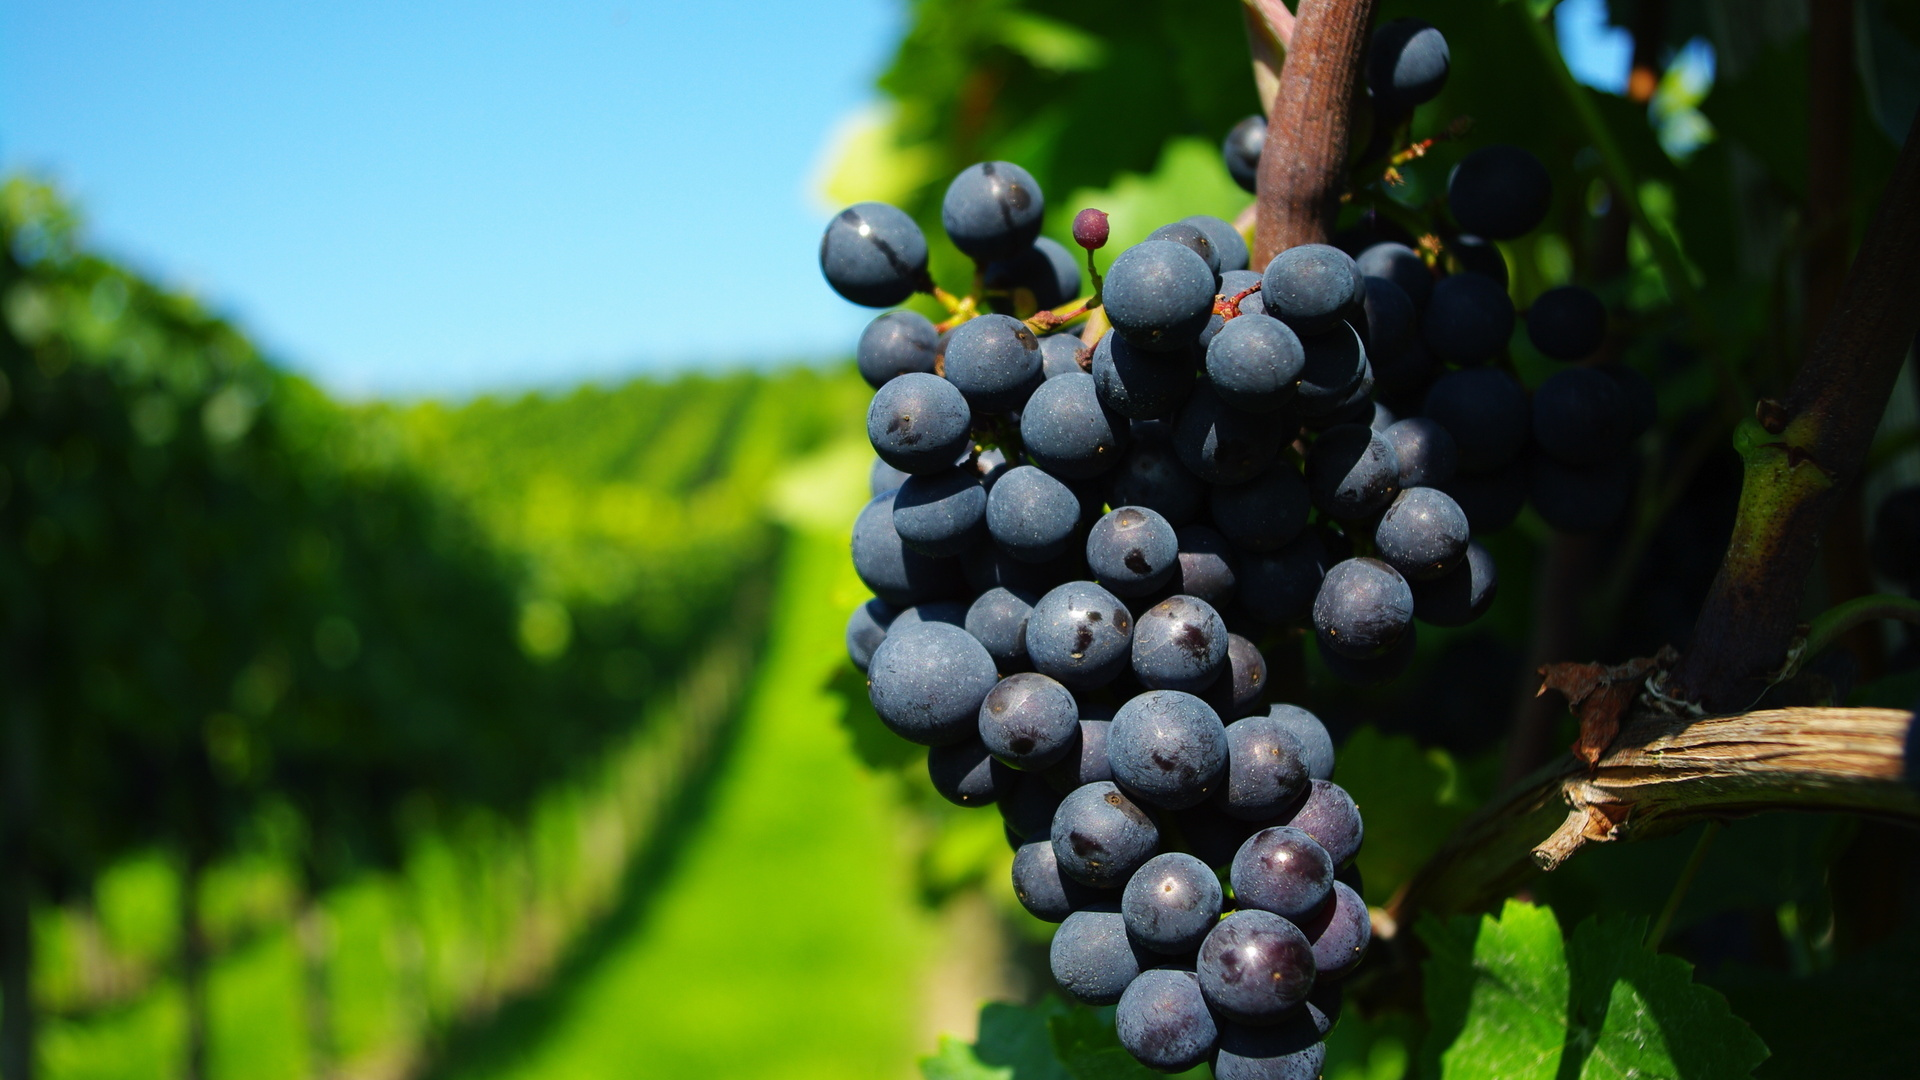 Image: Grapes, vine, bunch, fruit, vineyard, branches, greens, blurring